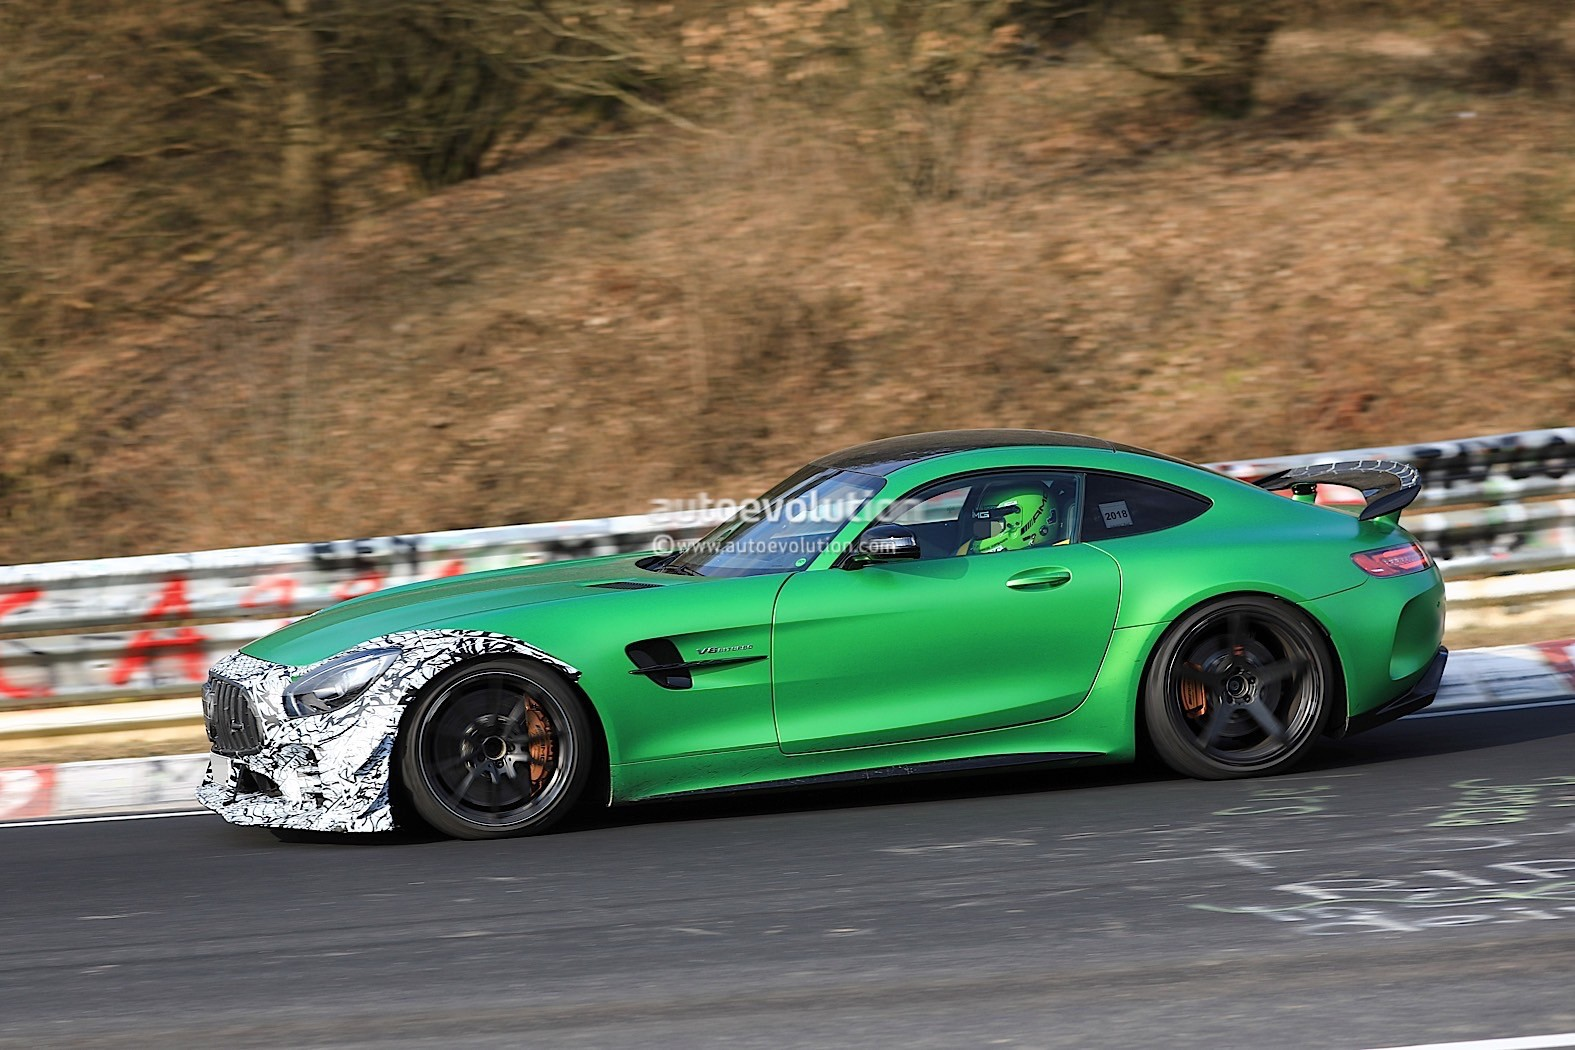 Spyshots: Mysterious Mercedes-AMG GT R Prototype Spotted ...